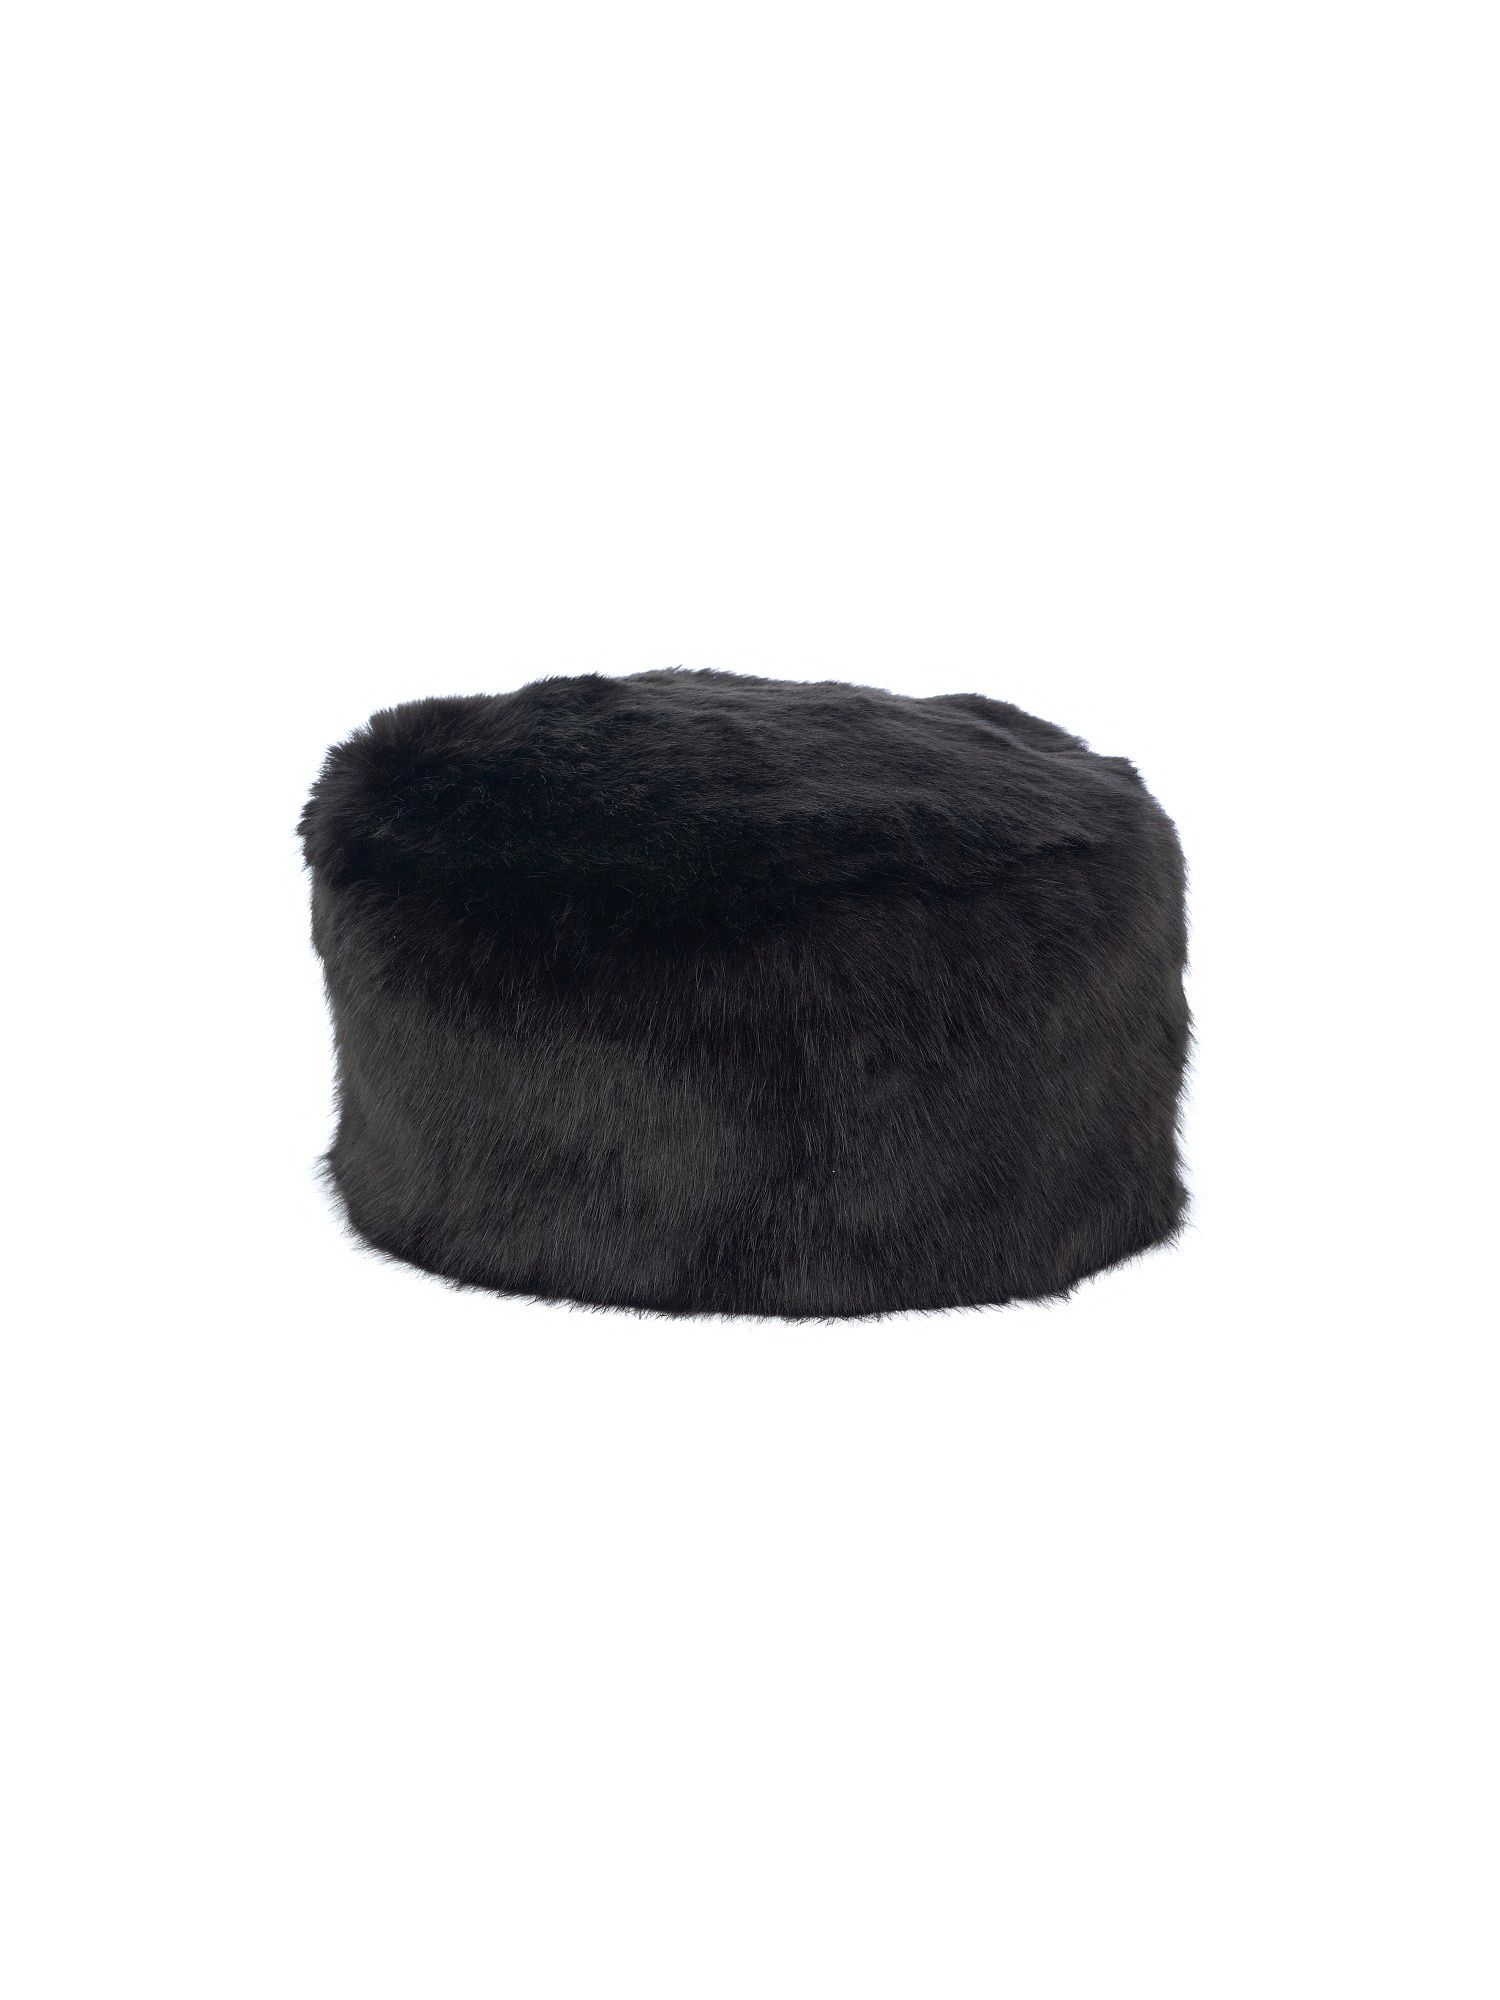 Black luxury faux fur hat